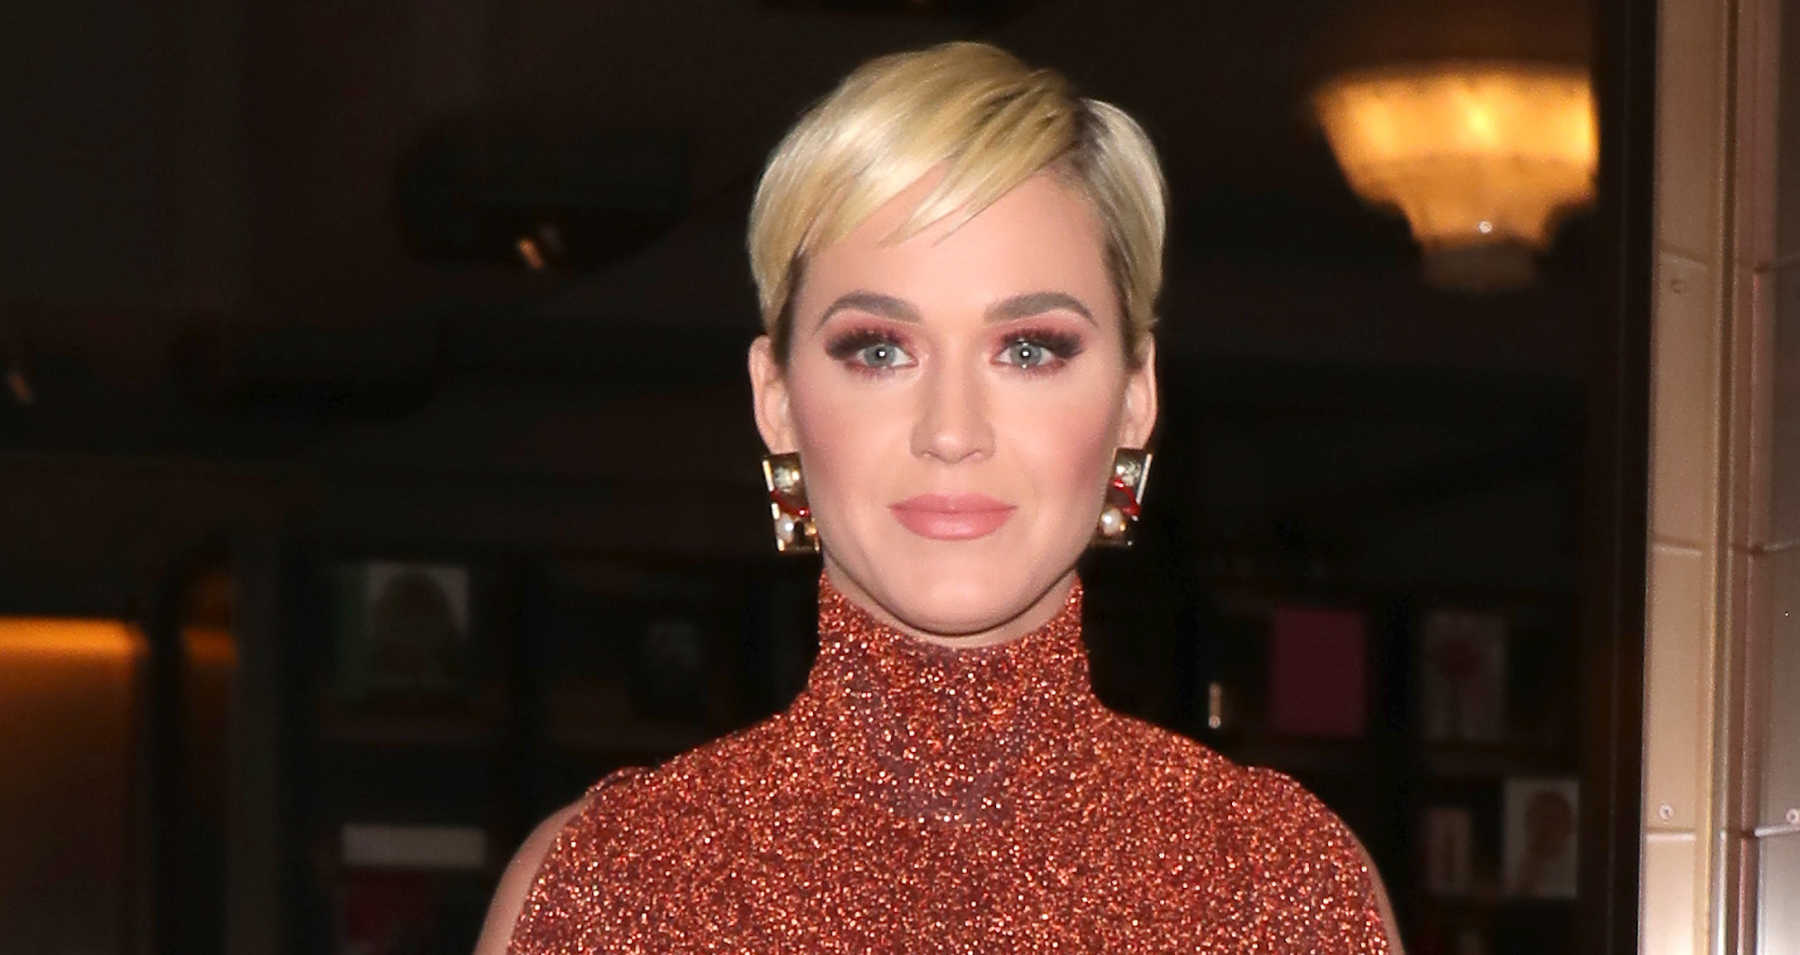 15 Things to Know About Katy Perry's Creepy Stalker Situation